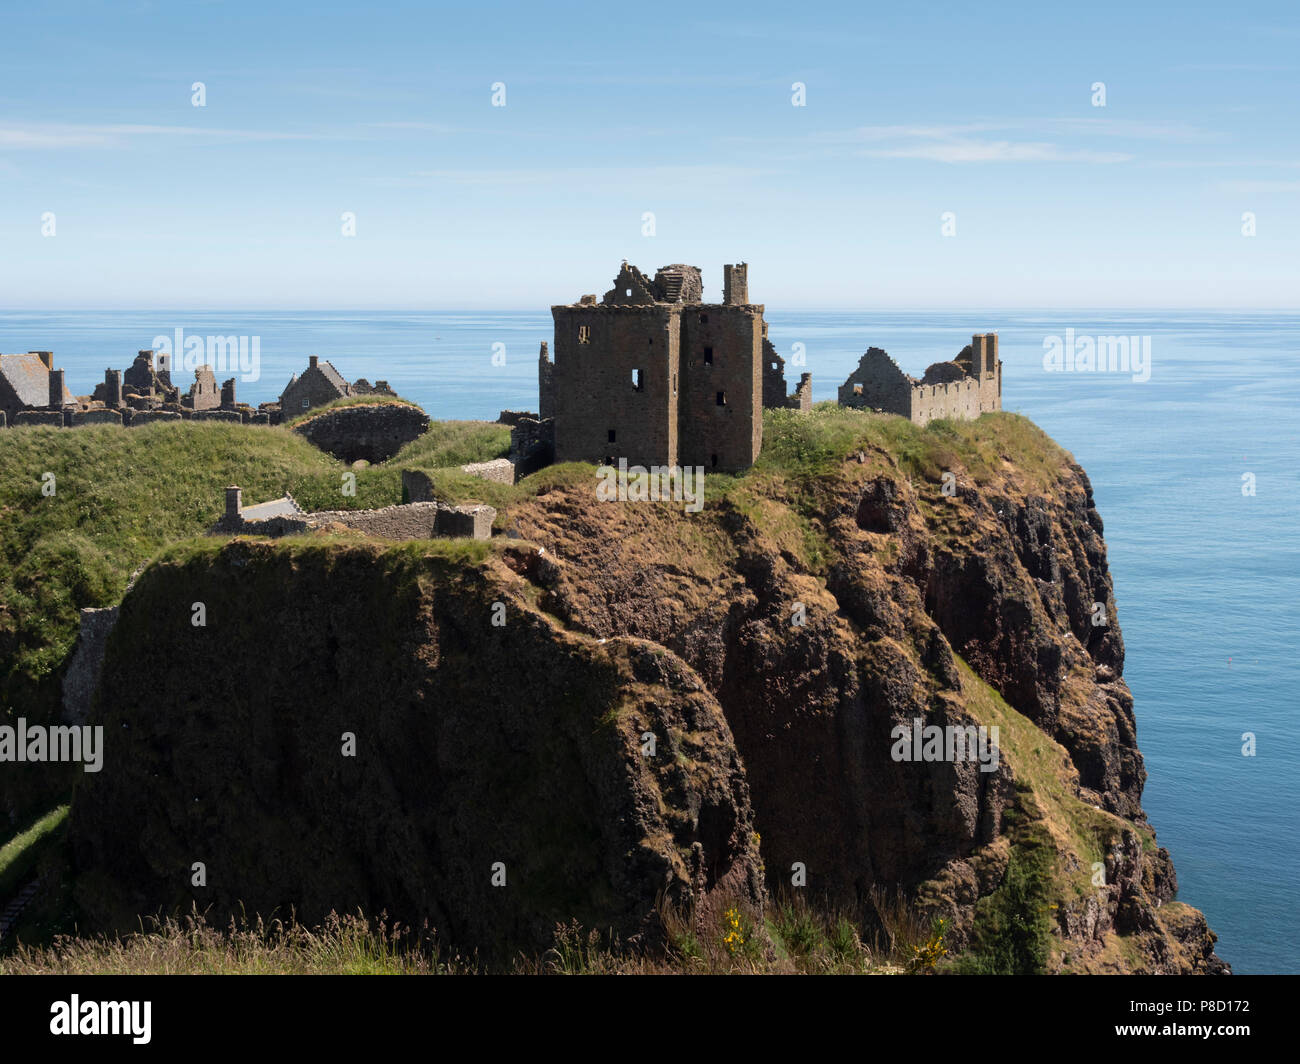 Dunottar Castle, Stonehaven, Aberdeenshire - one of Scotland's most identifiable strongholds, built in the 15th and 1y6th centuries. Stock Photo